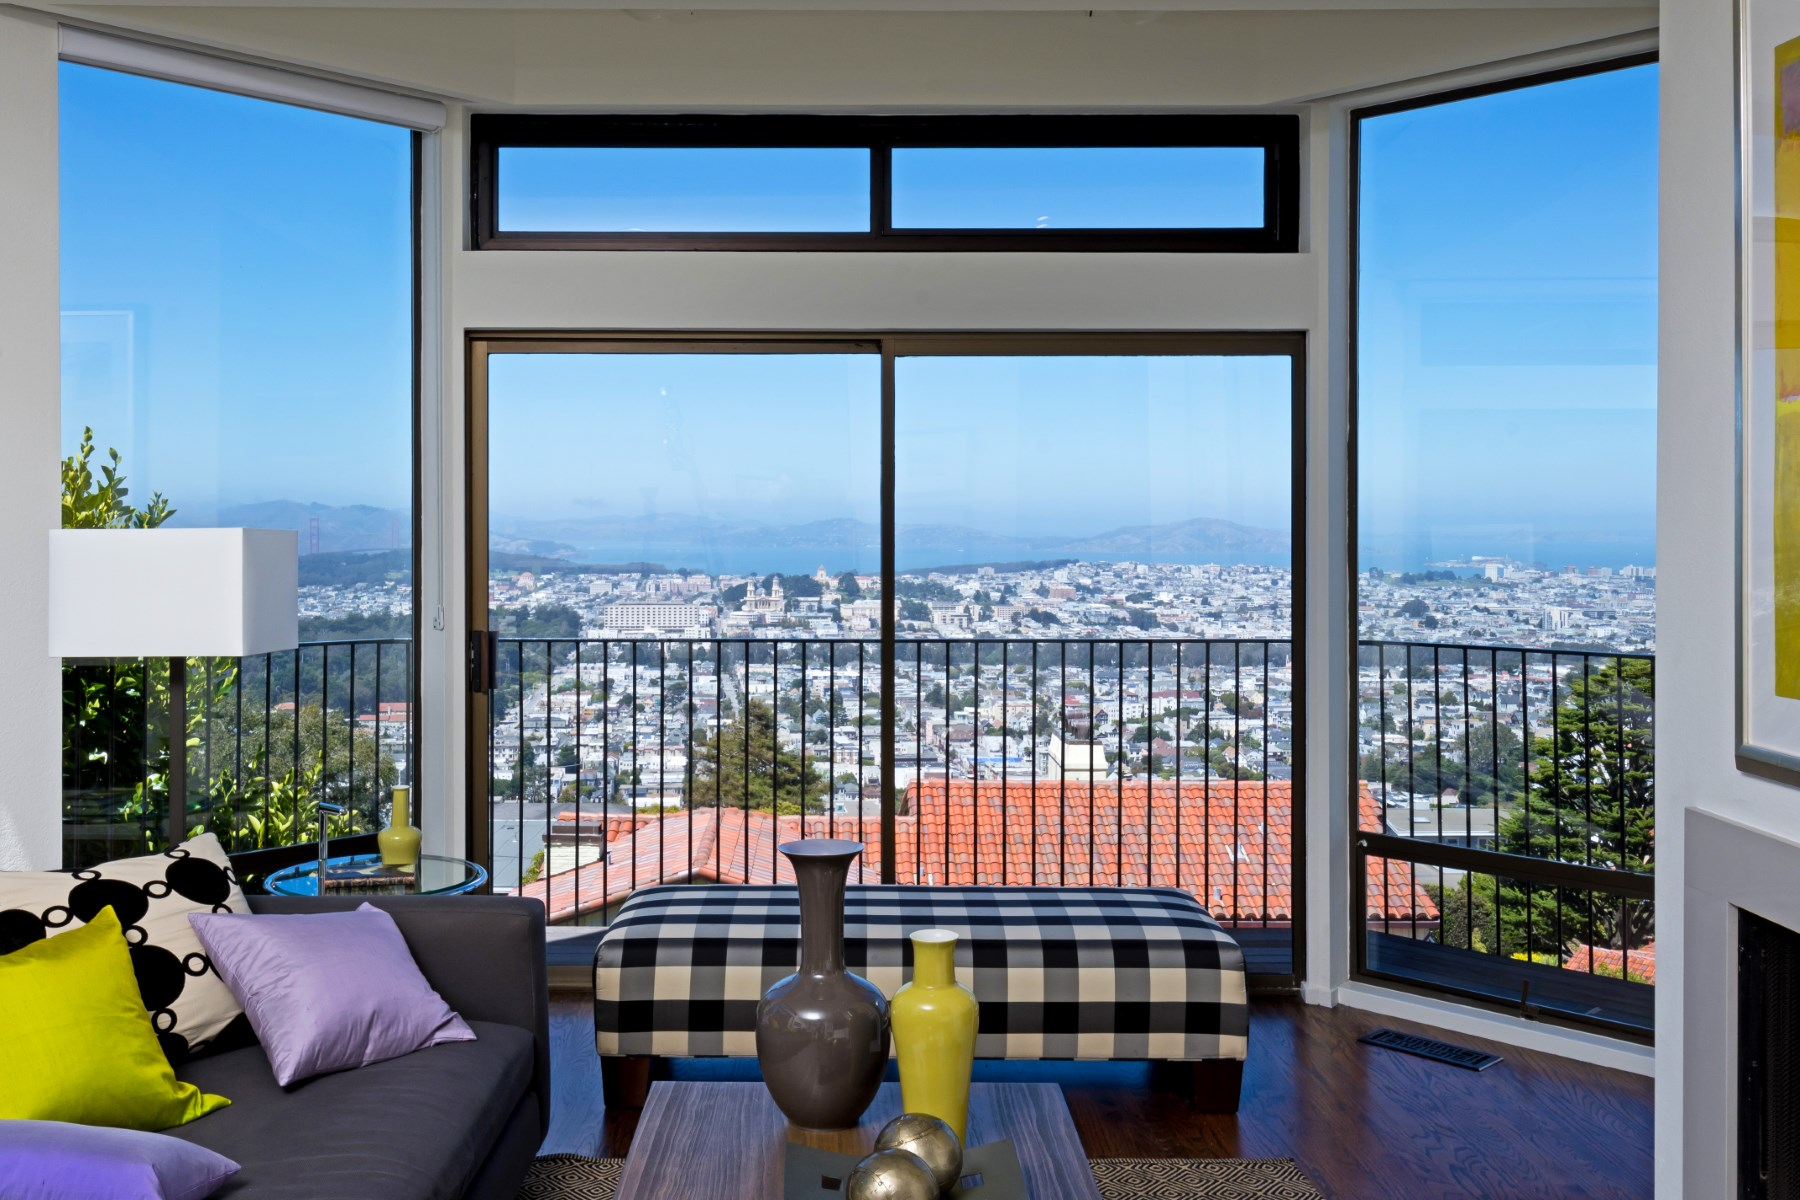 Single Family Home for Sale at San Francisco's Finest Views 85 Saint Germain Ave Twin Peaks, San Francisco, California, 94114 United States